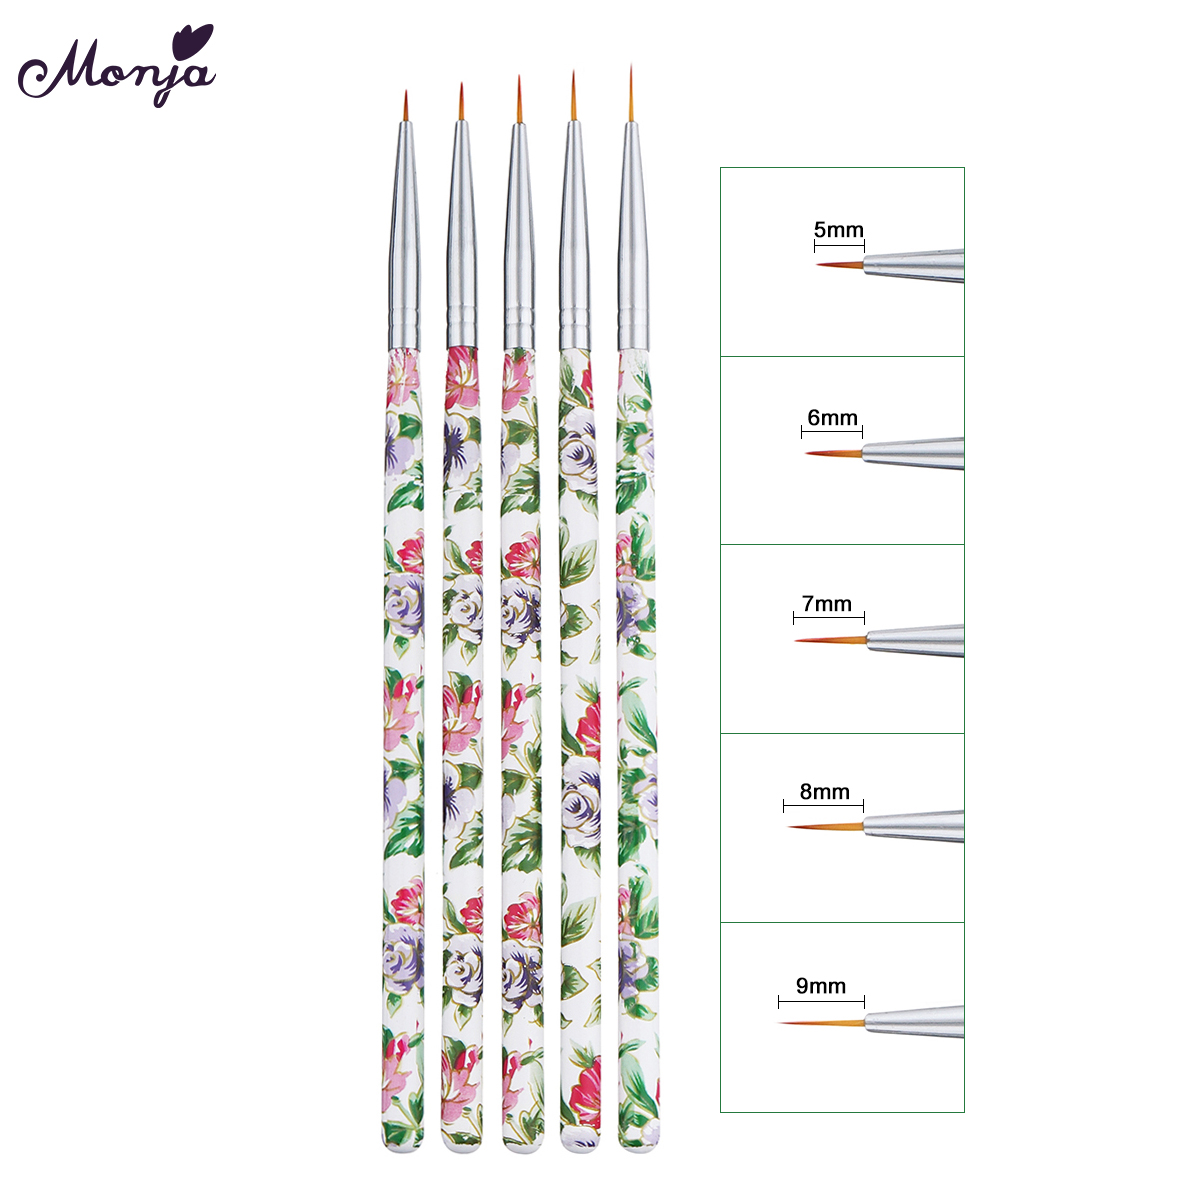 Monja 5pcs 5/6/7/8/9mm Nail Art French Flower Images Lines Stripes Painting Drawing Liner Brush Manicure Tools